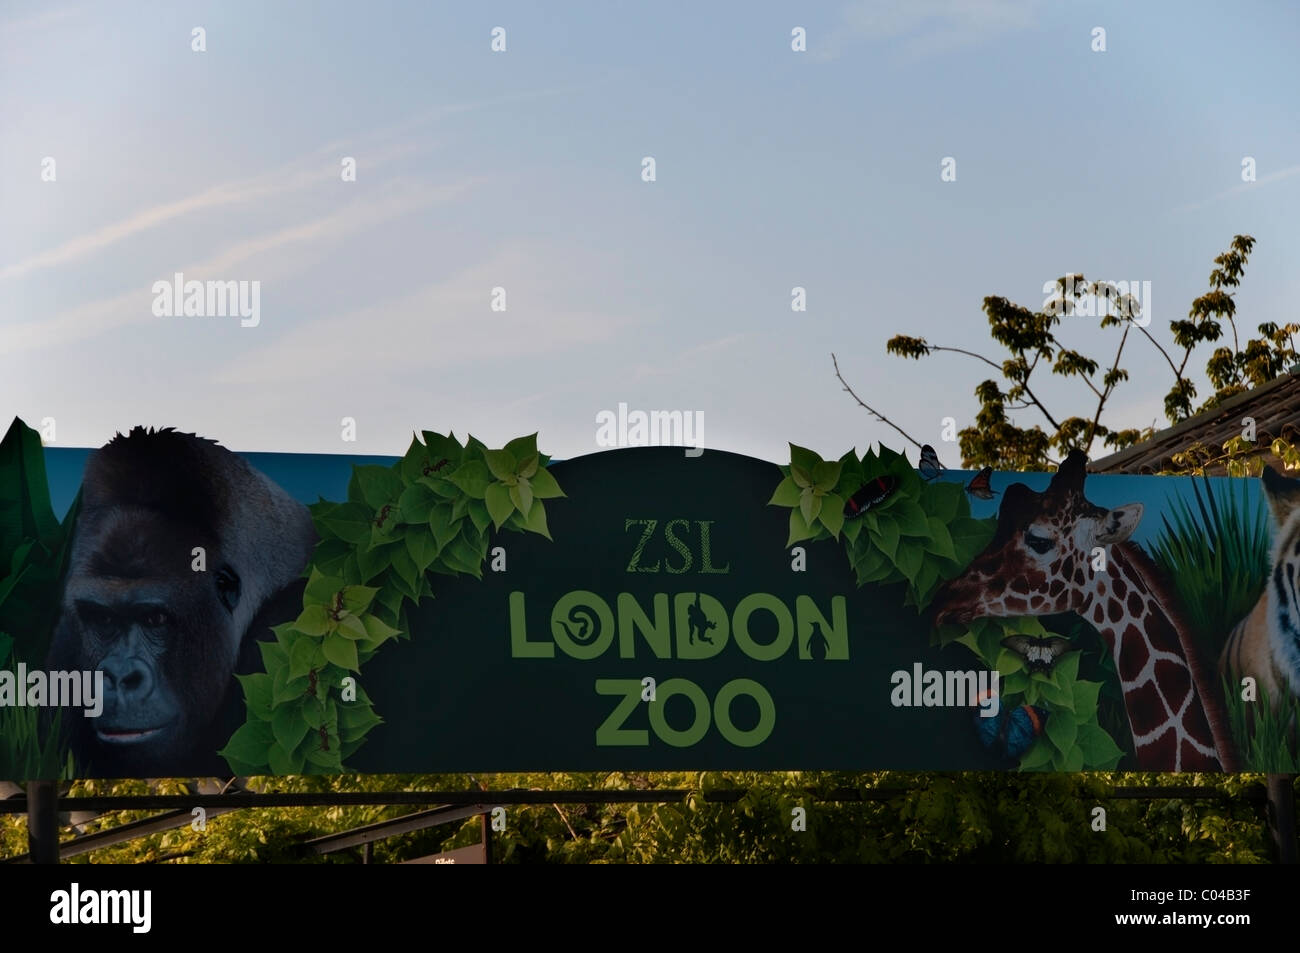 London Zoo sign, close-up, Zoological Gardens entrance, Regents Park, England, UK, Europe, EU - Stock Image